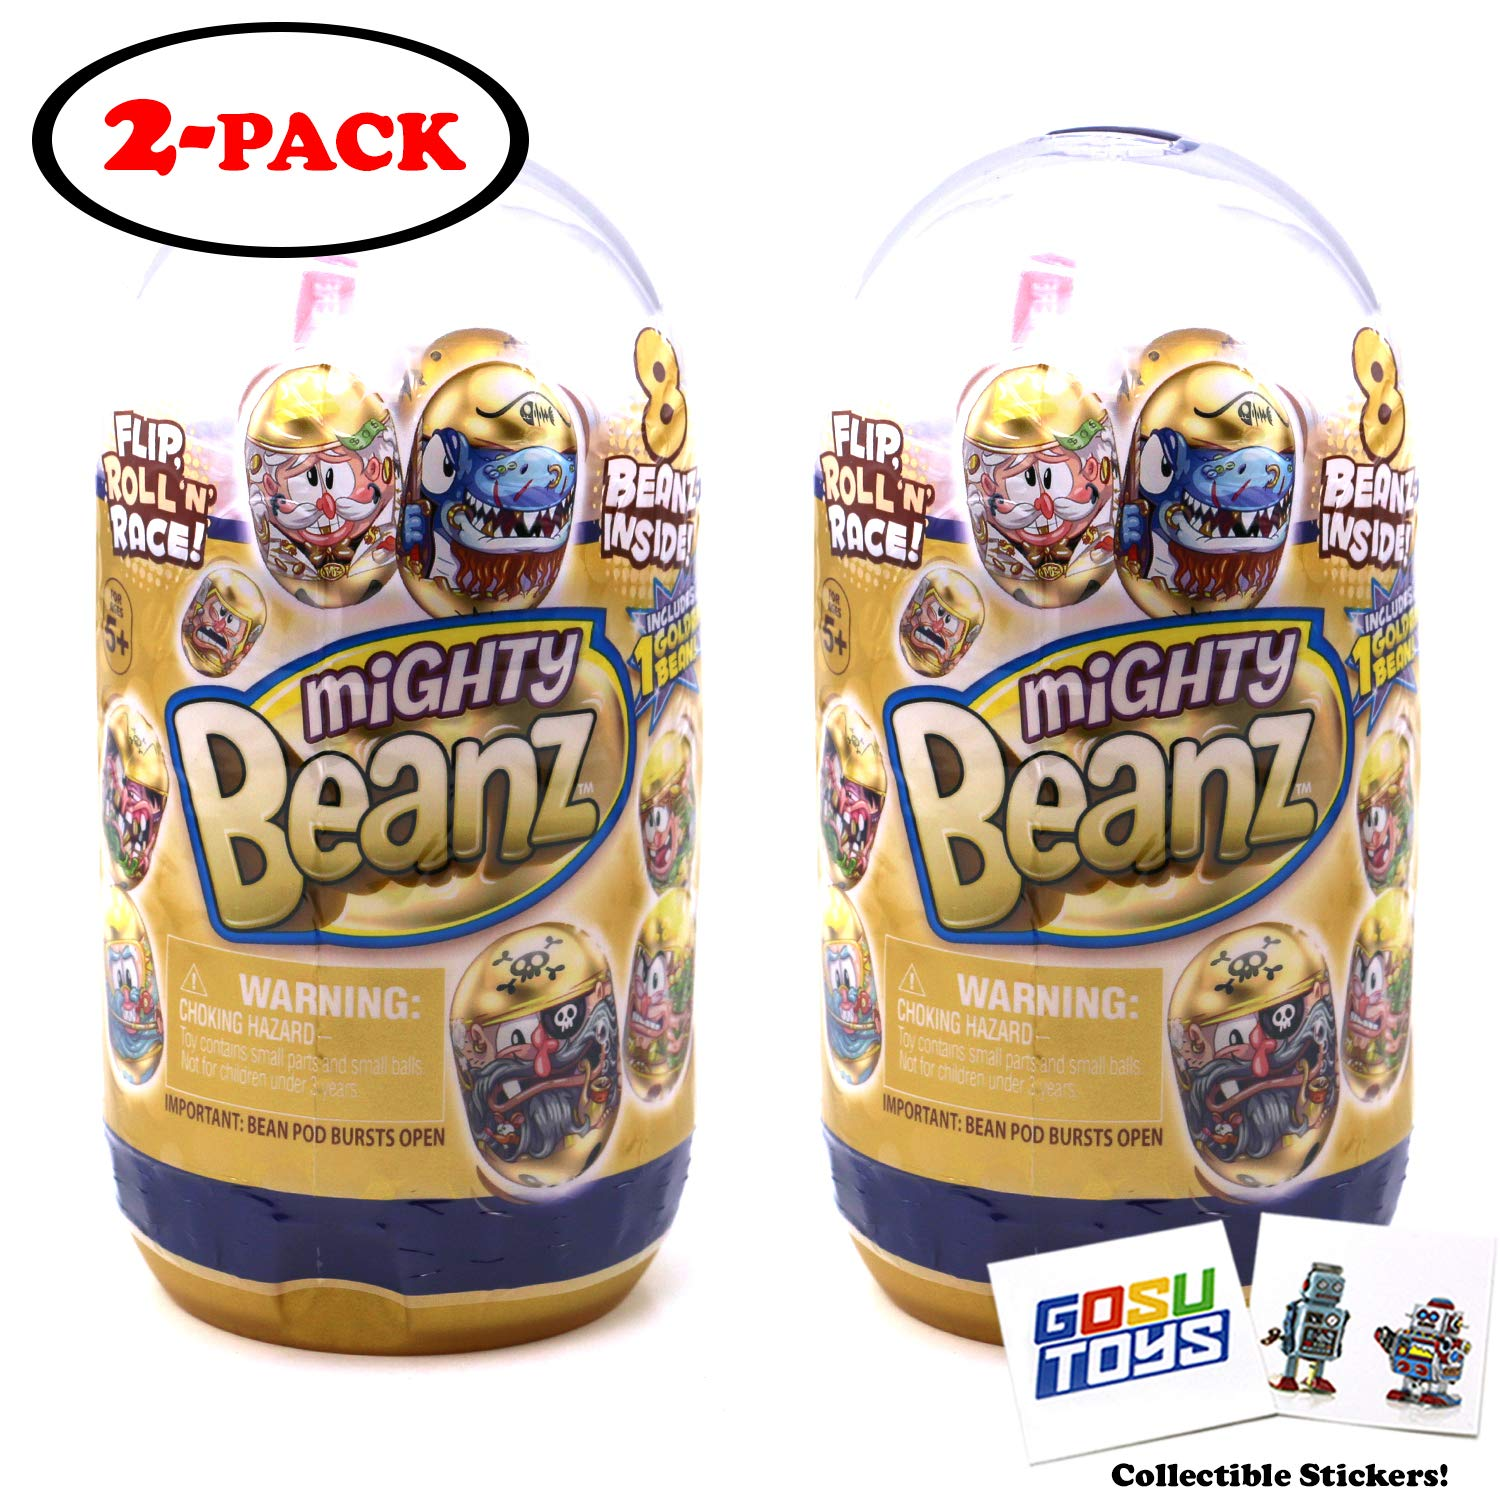 Mighty Beanz Golden Slam Pack (2 Pack) with 2 GosuToys Stickers Gift Bundle - 16 Mighty Beanz Total by MIGHTY BEANZ